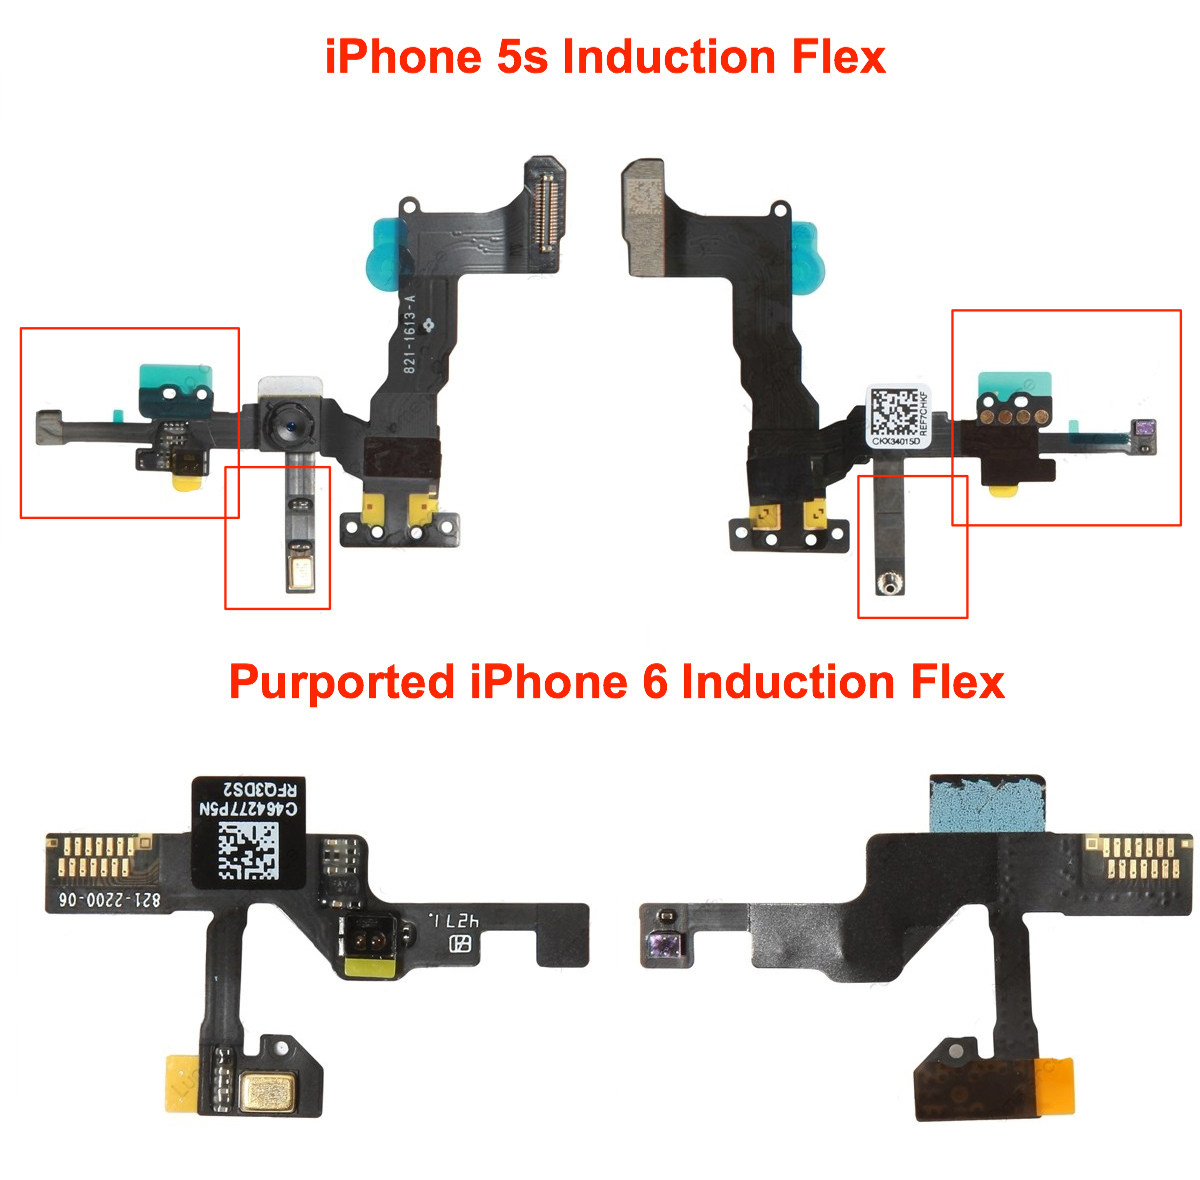 iPhone-6-Induction-Flex